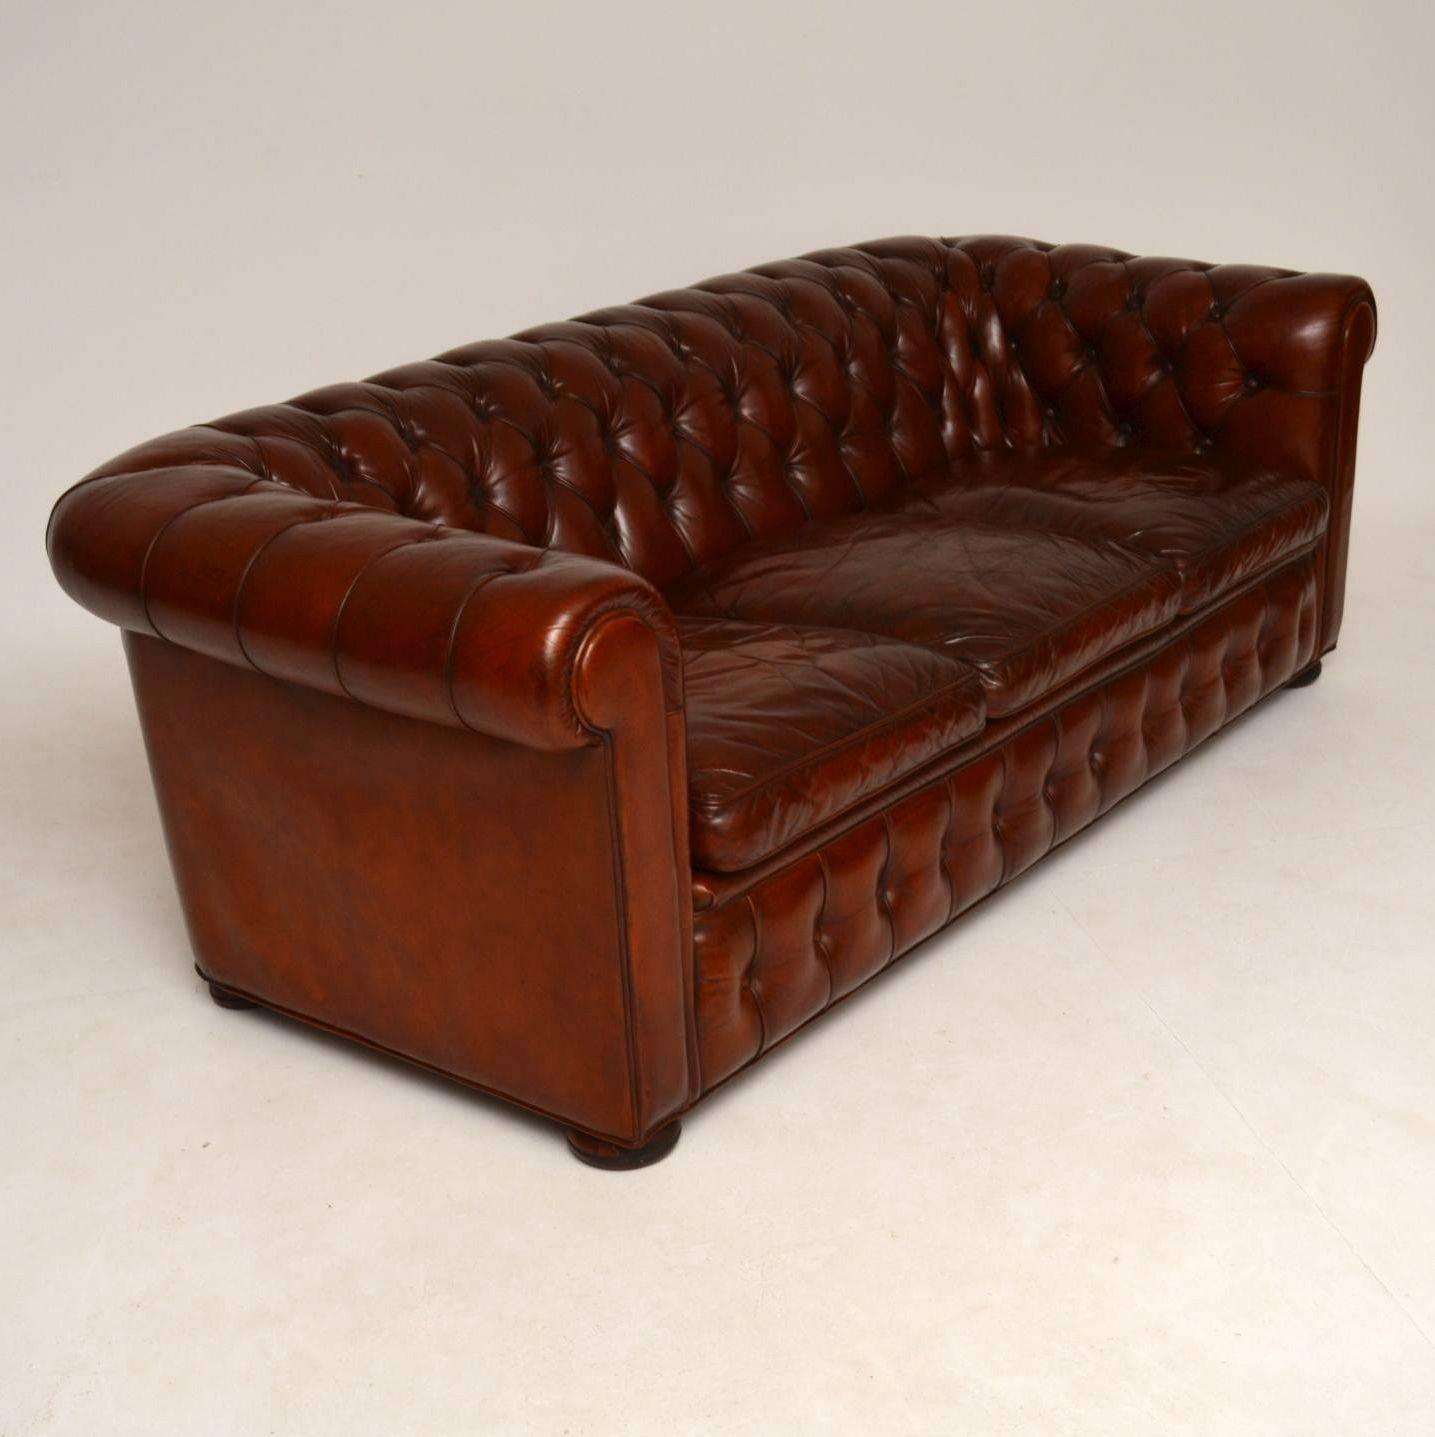 Antique Leather Three Seat Chesterfield Sofa For Sale At